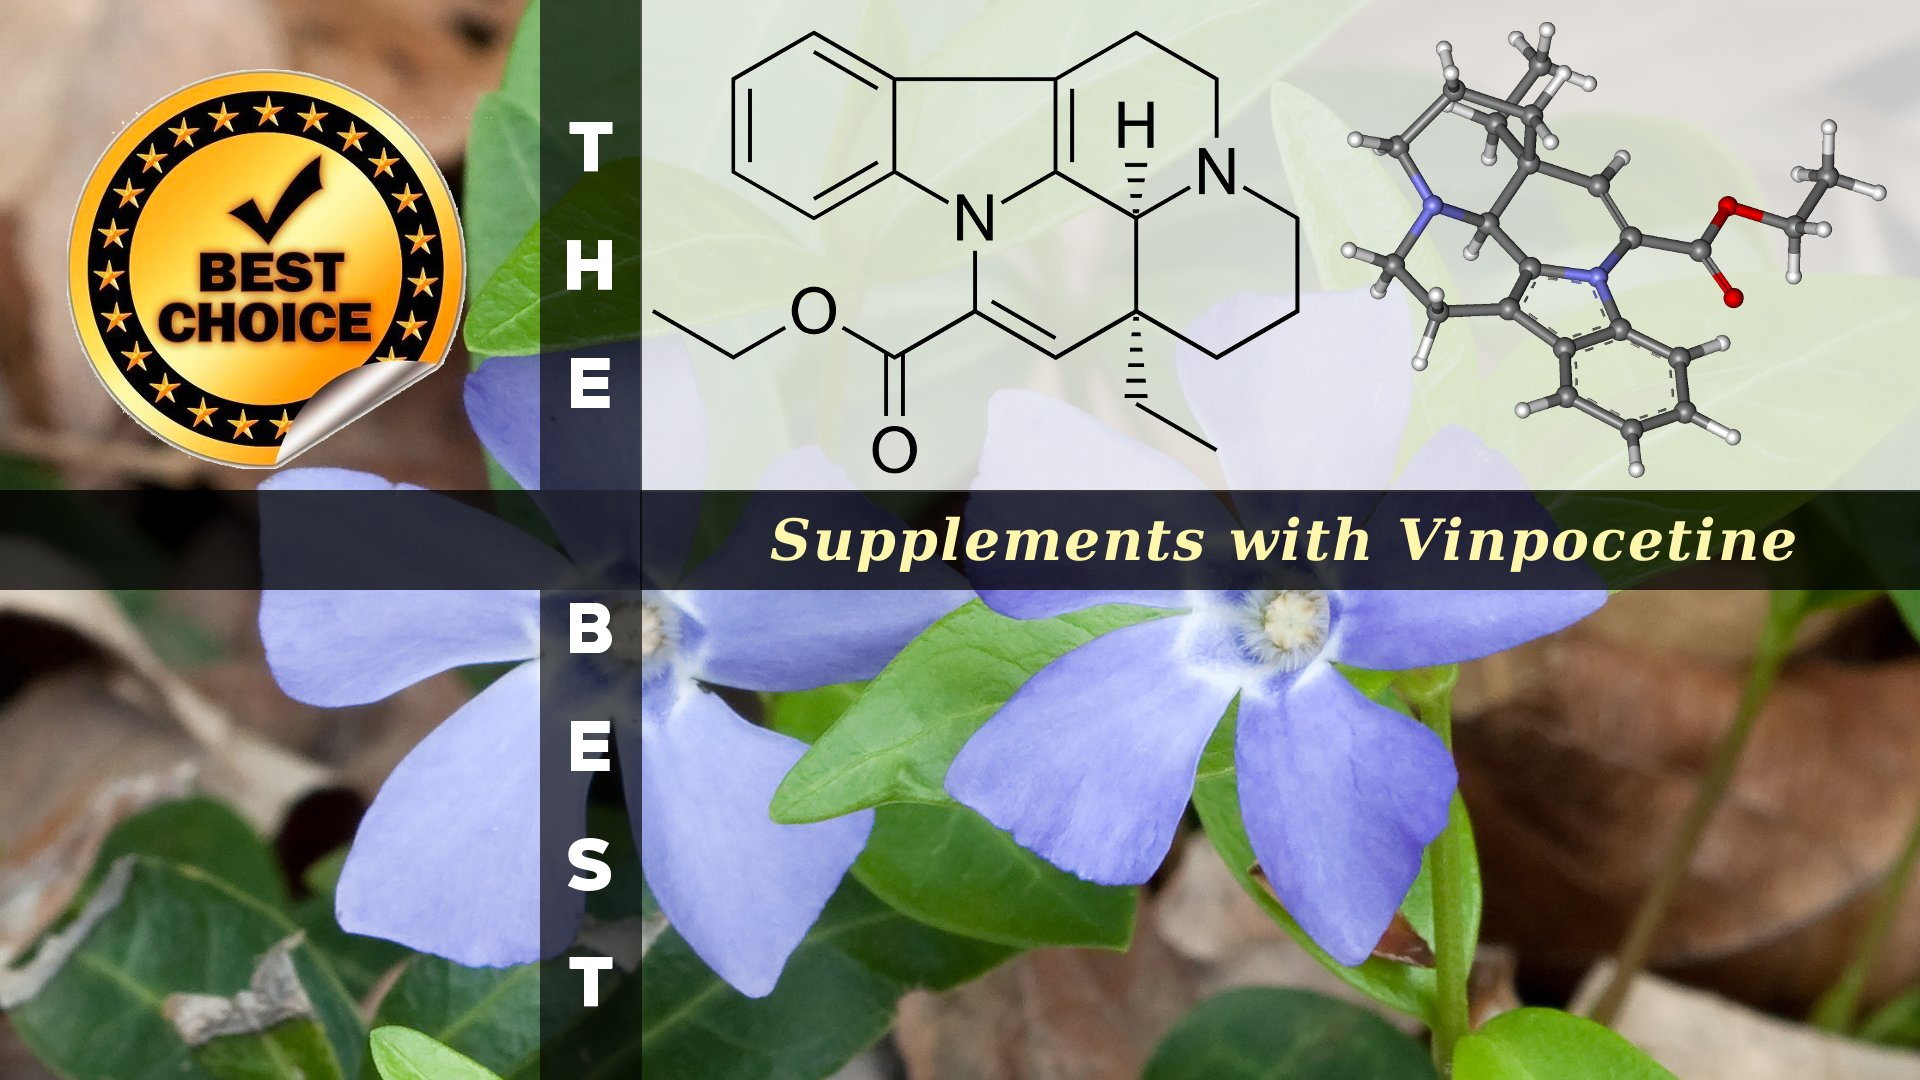 The Supplements with Vinpocetine